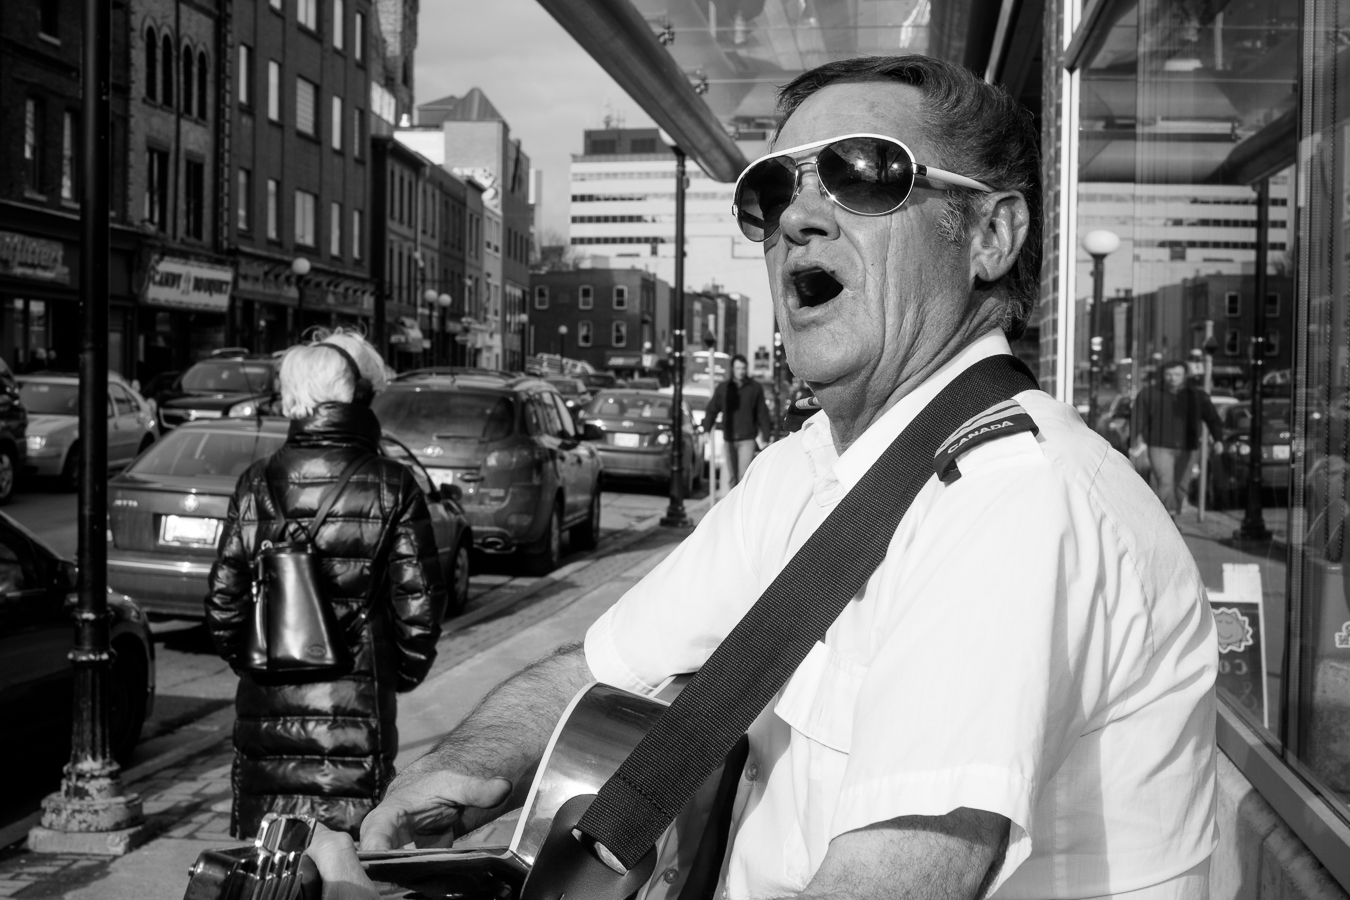 This guy harasses more than busks, He's got a monster of a voice - Atlantic Place - water street